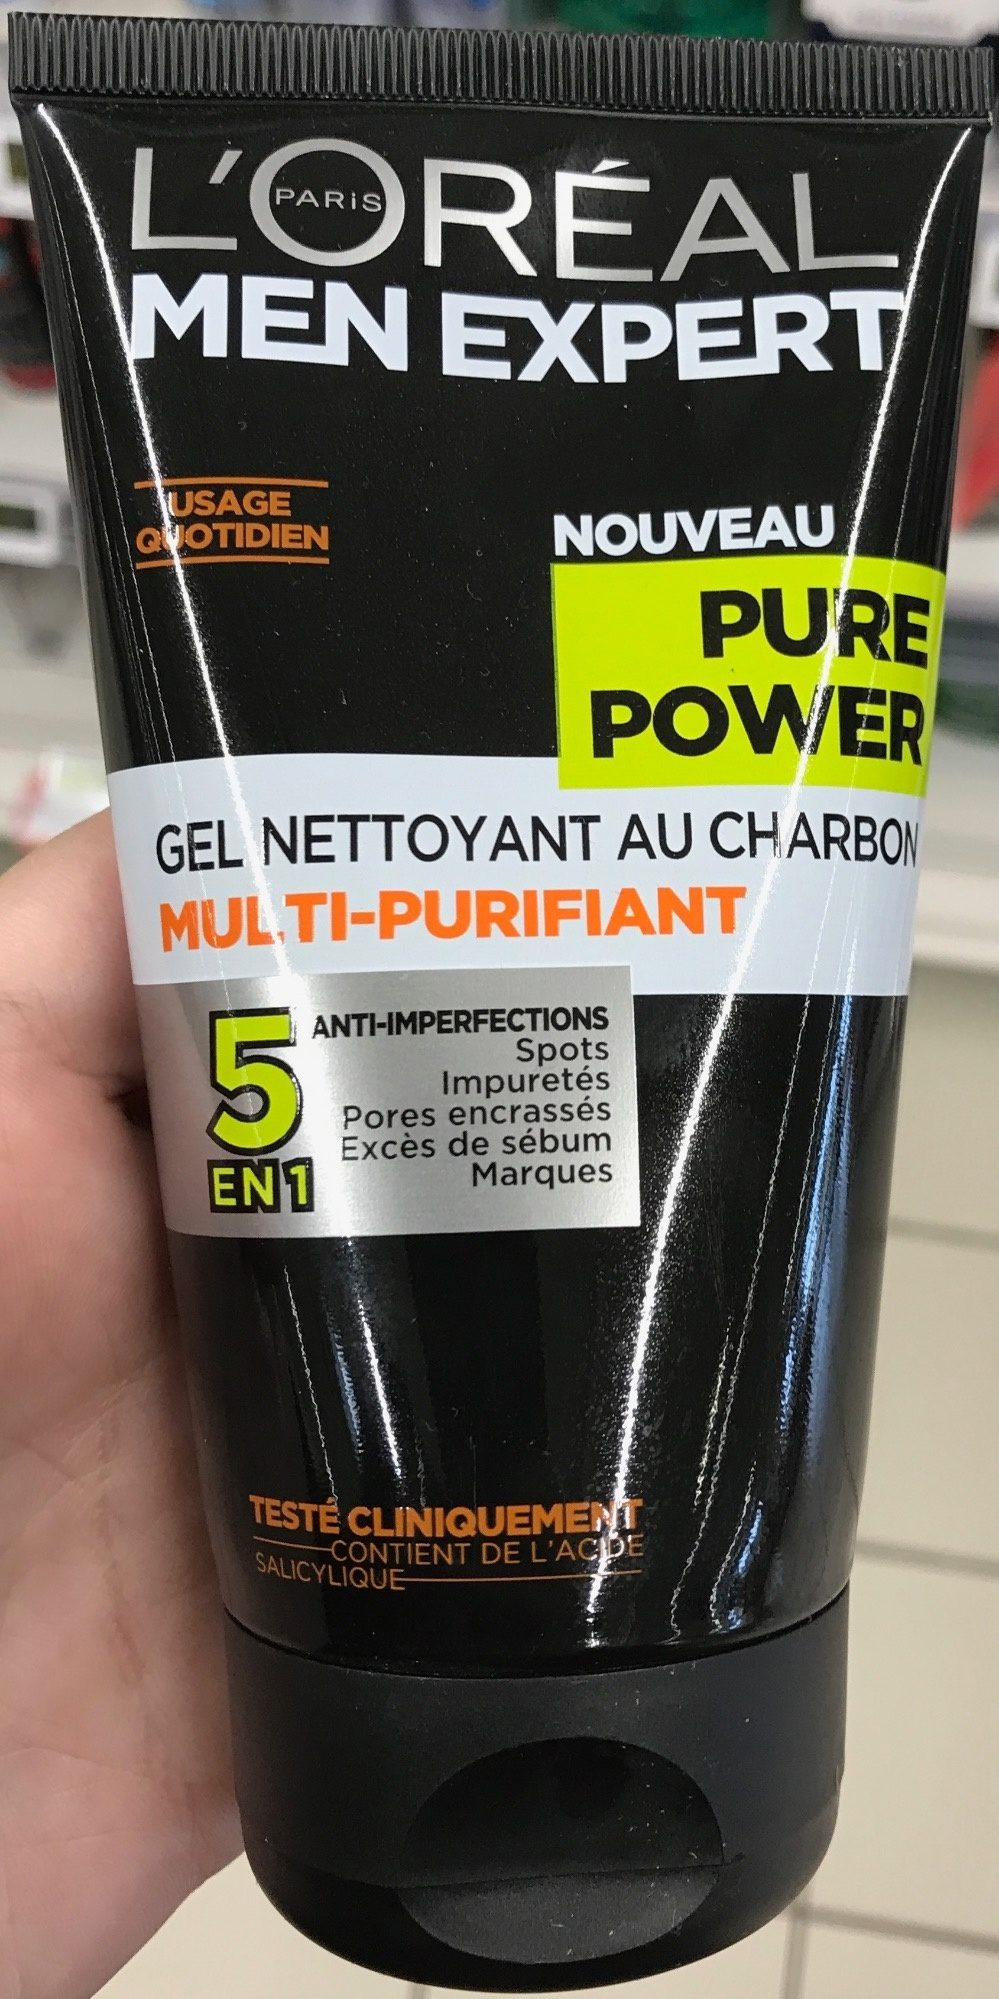 Gel nettoyant au charbon multi-purifiant Pure Power 5 en 1 - Product - fr